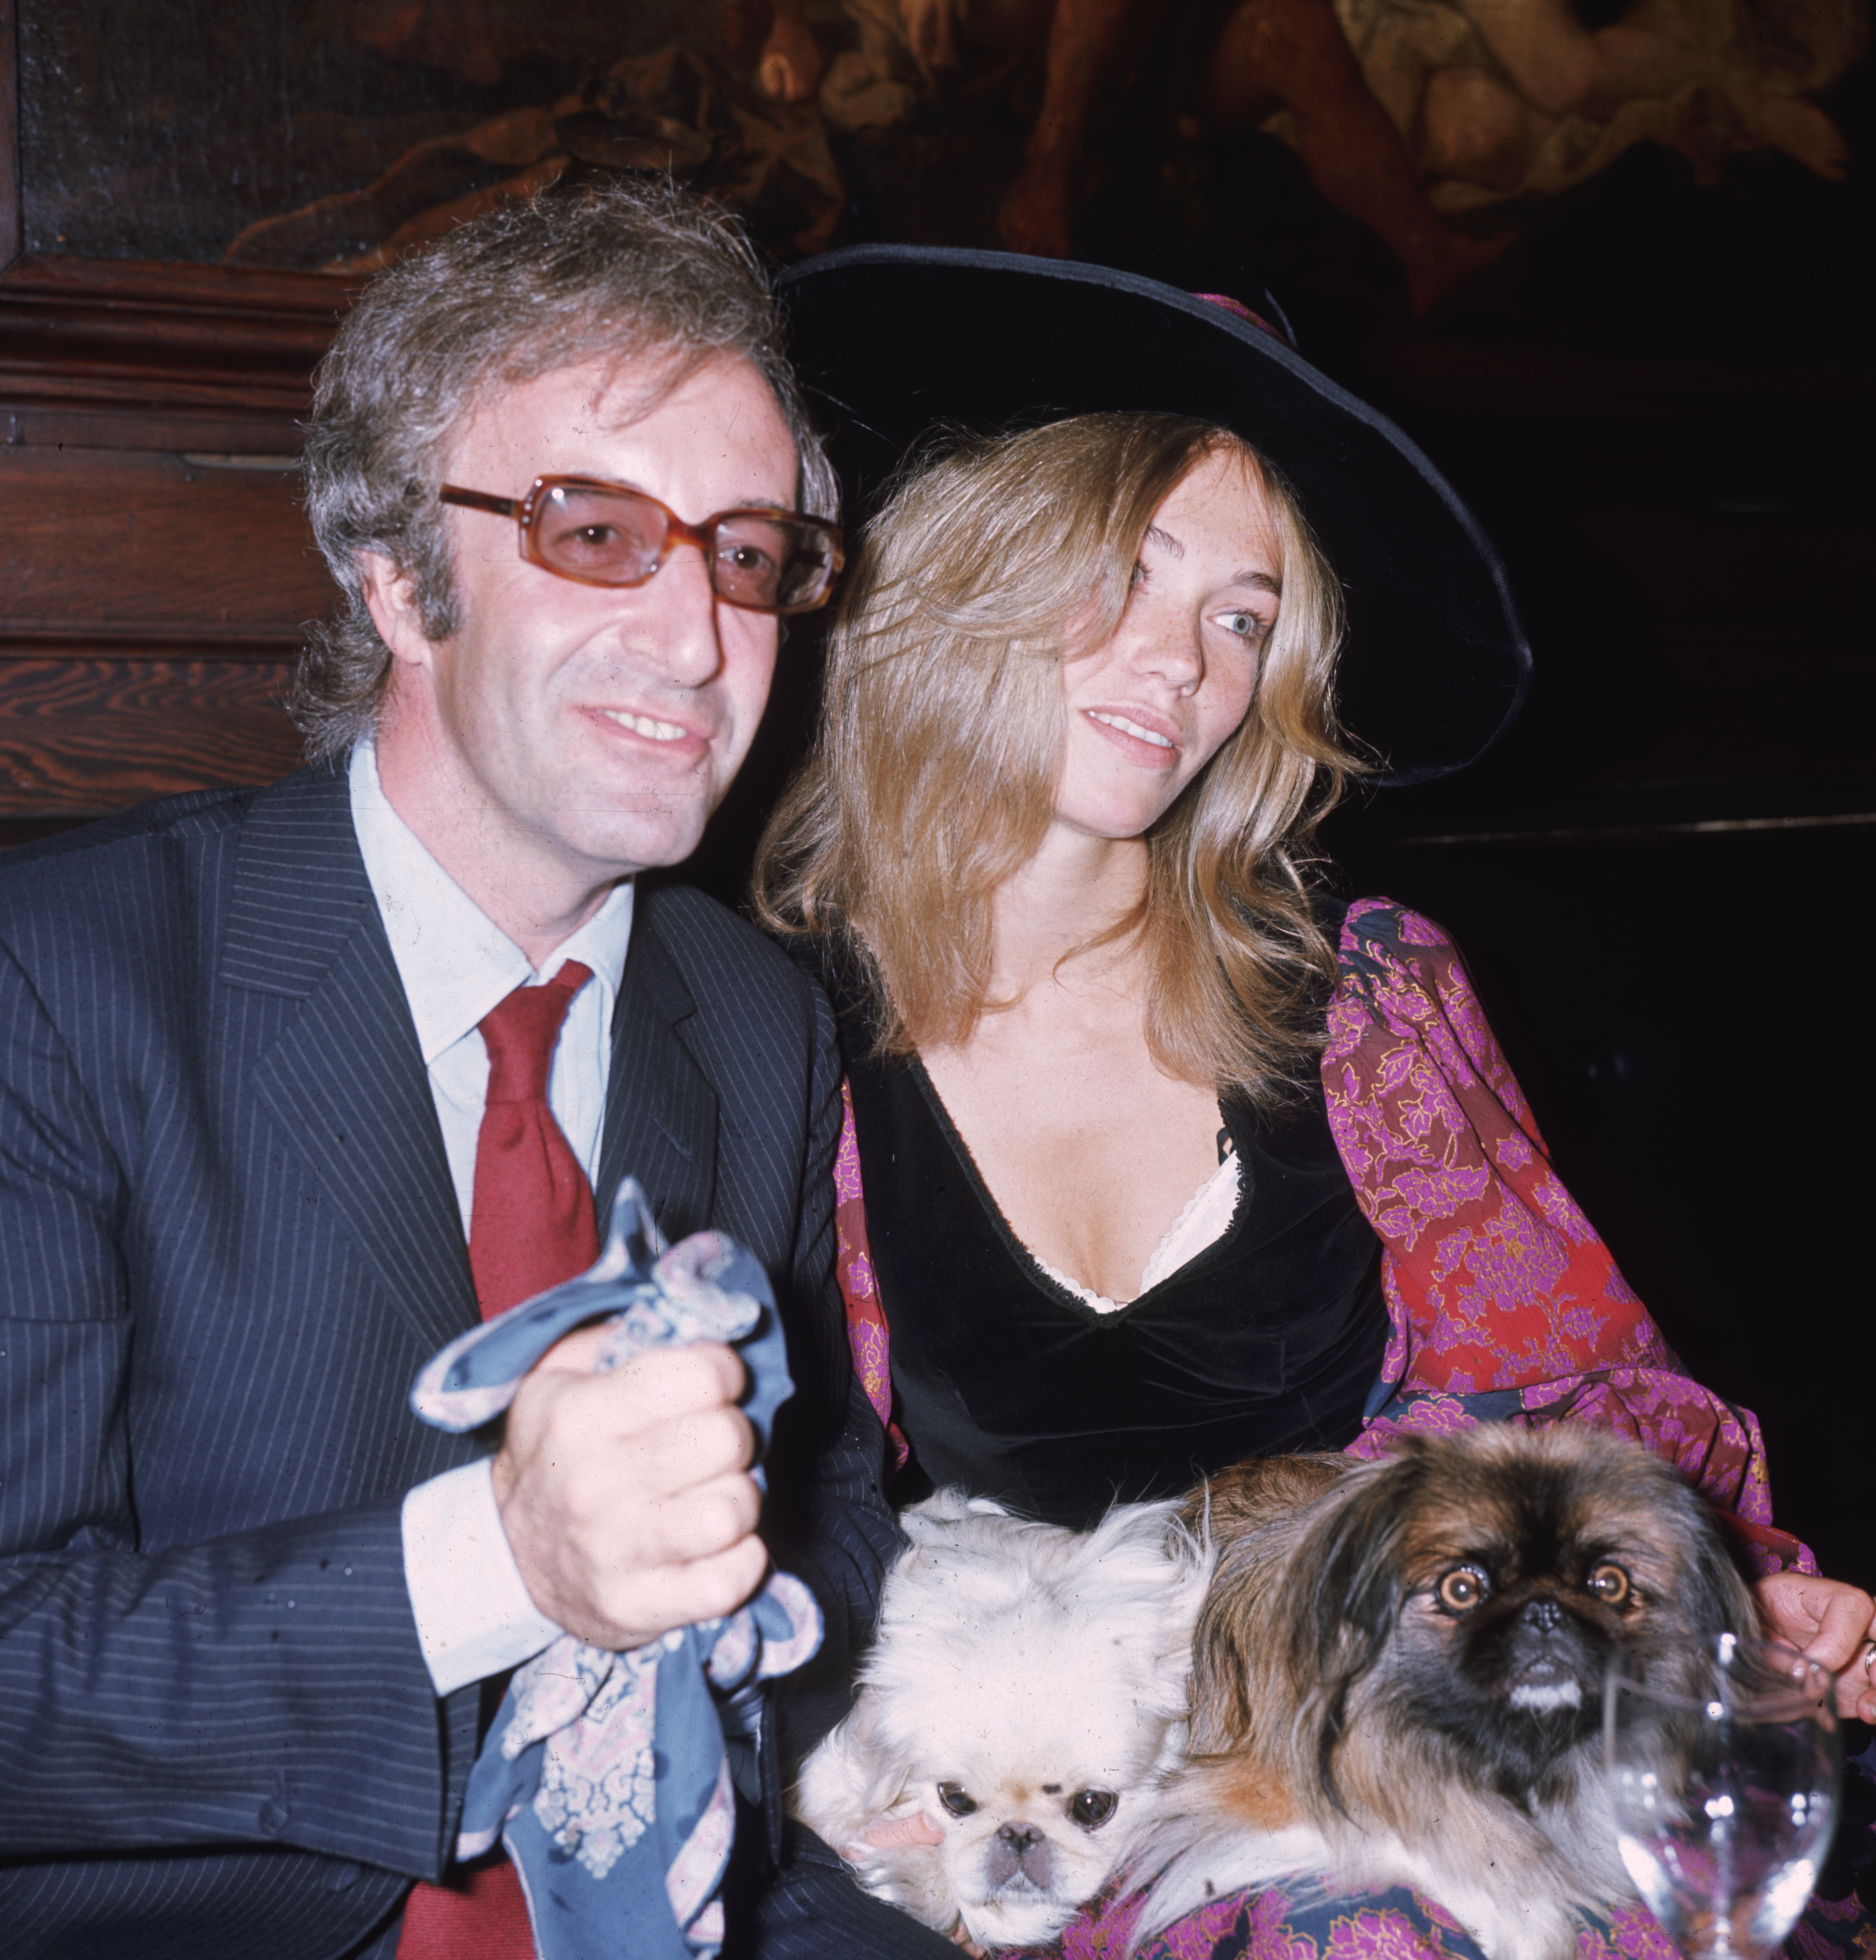 English comedian and actor Peter Sellers with his third wife, Miranda Quarry, the stepdaughter of Lord Mancroft, deputy chairman of Cunard's, at their wedding reception at 'Tramp' in Jermyn Street, with Miranda's two pekinese dogs. (Photo by George Hales/Getty Images)